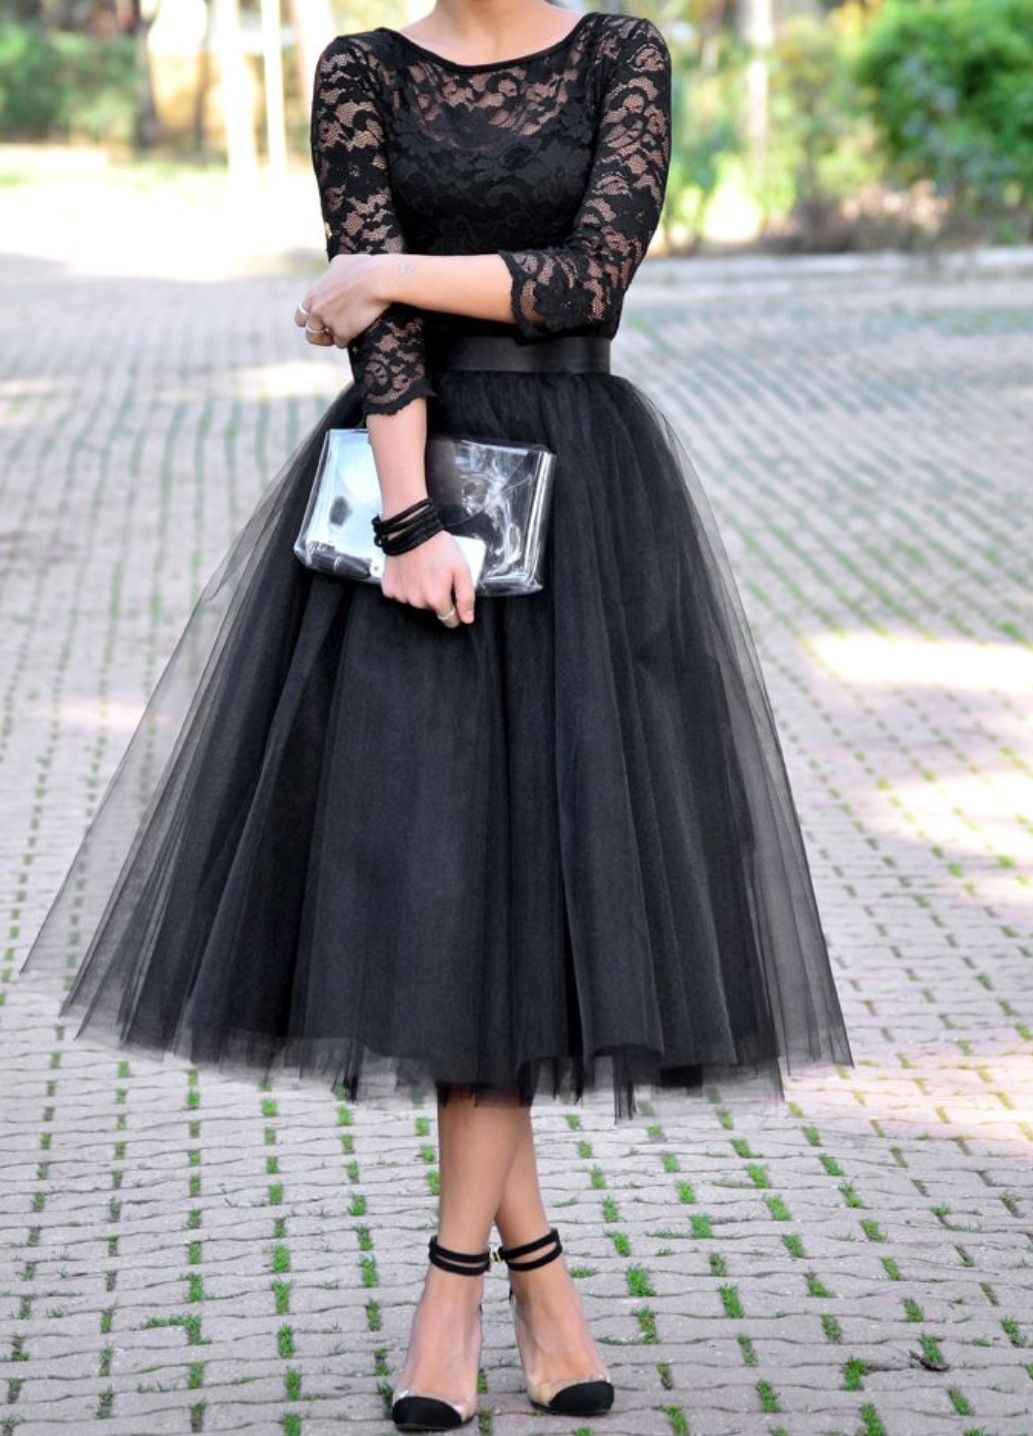 Is a black dress ok to wear to a wedding  jilliandillon THIS is what I want to wear to the wedding